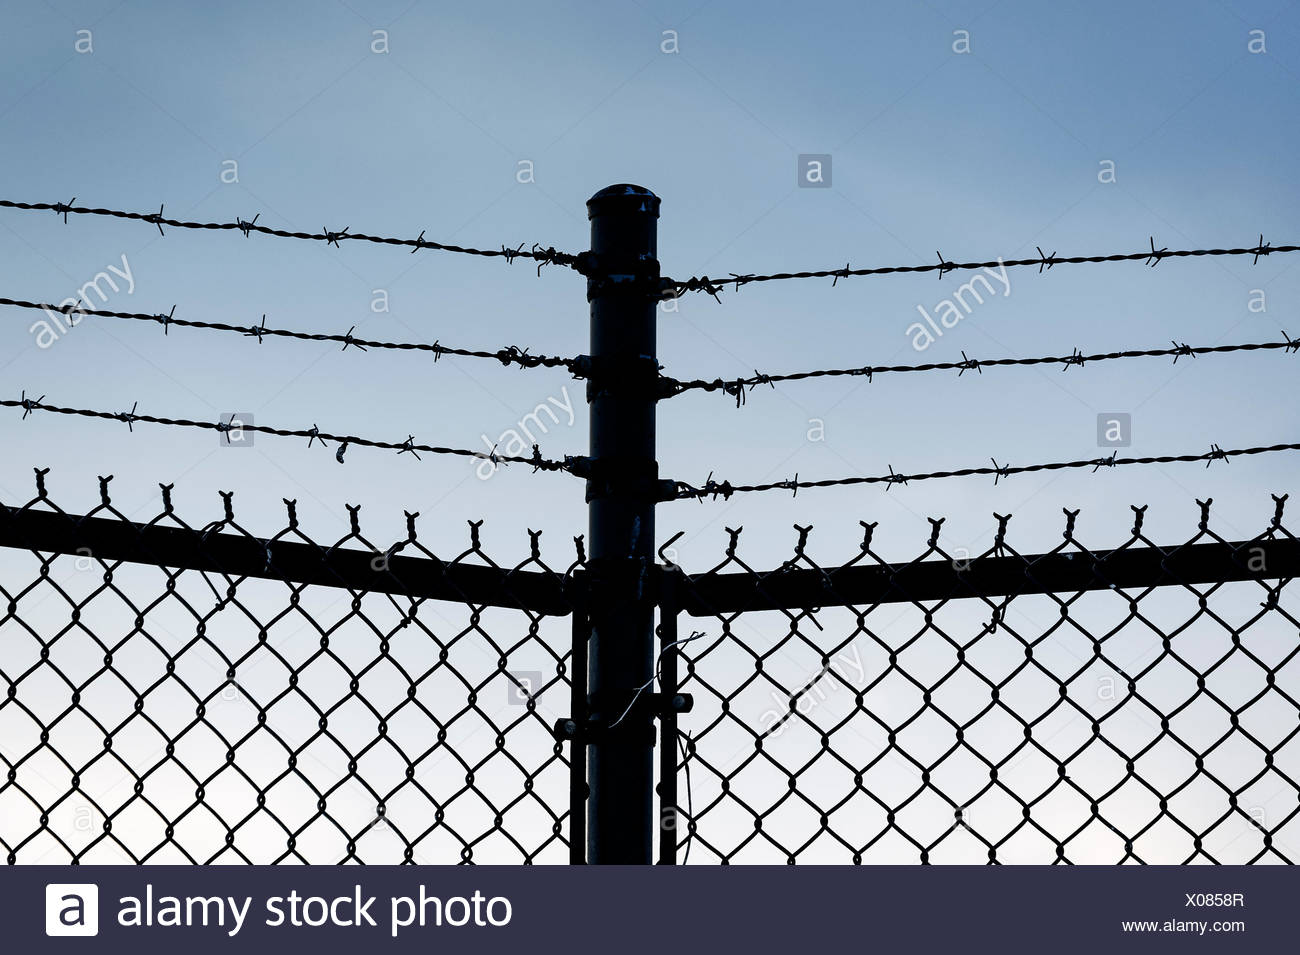 Barbed wire fence. Stock Photo